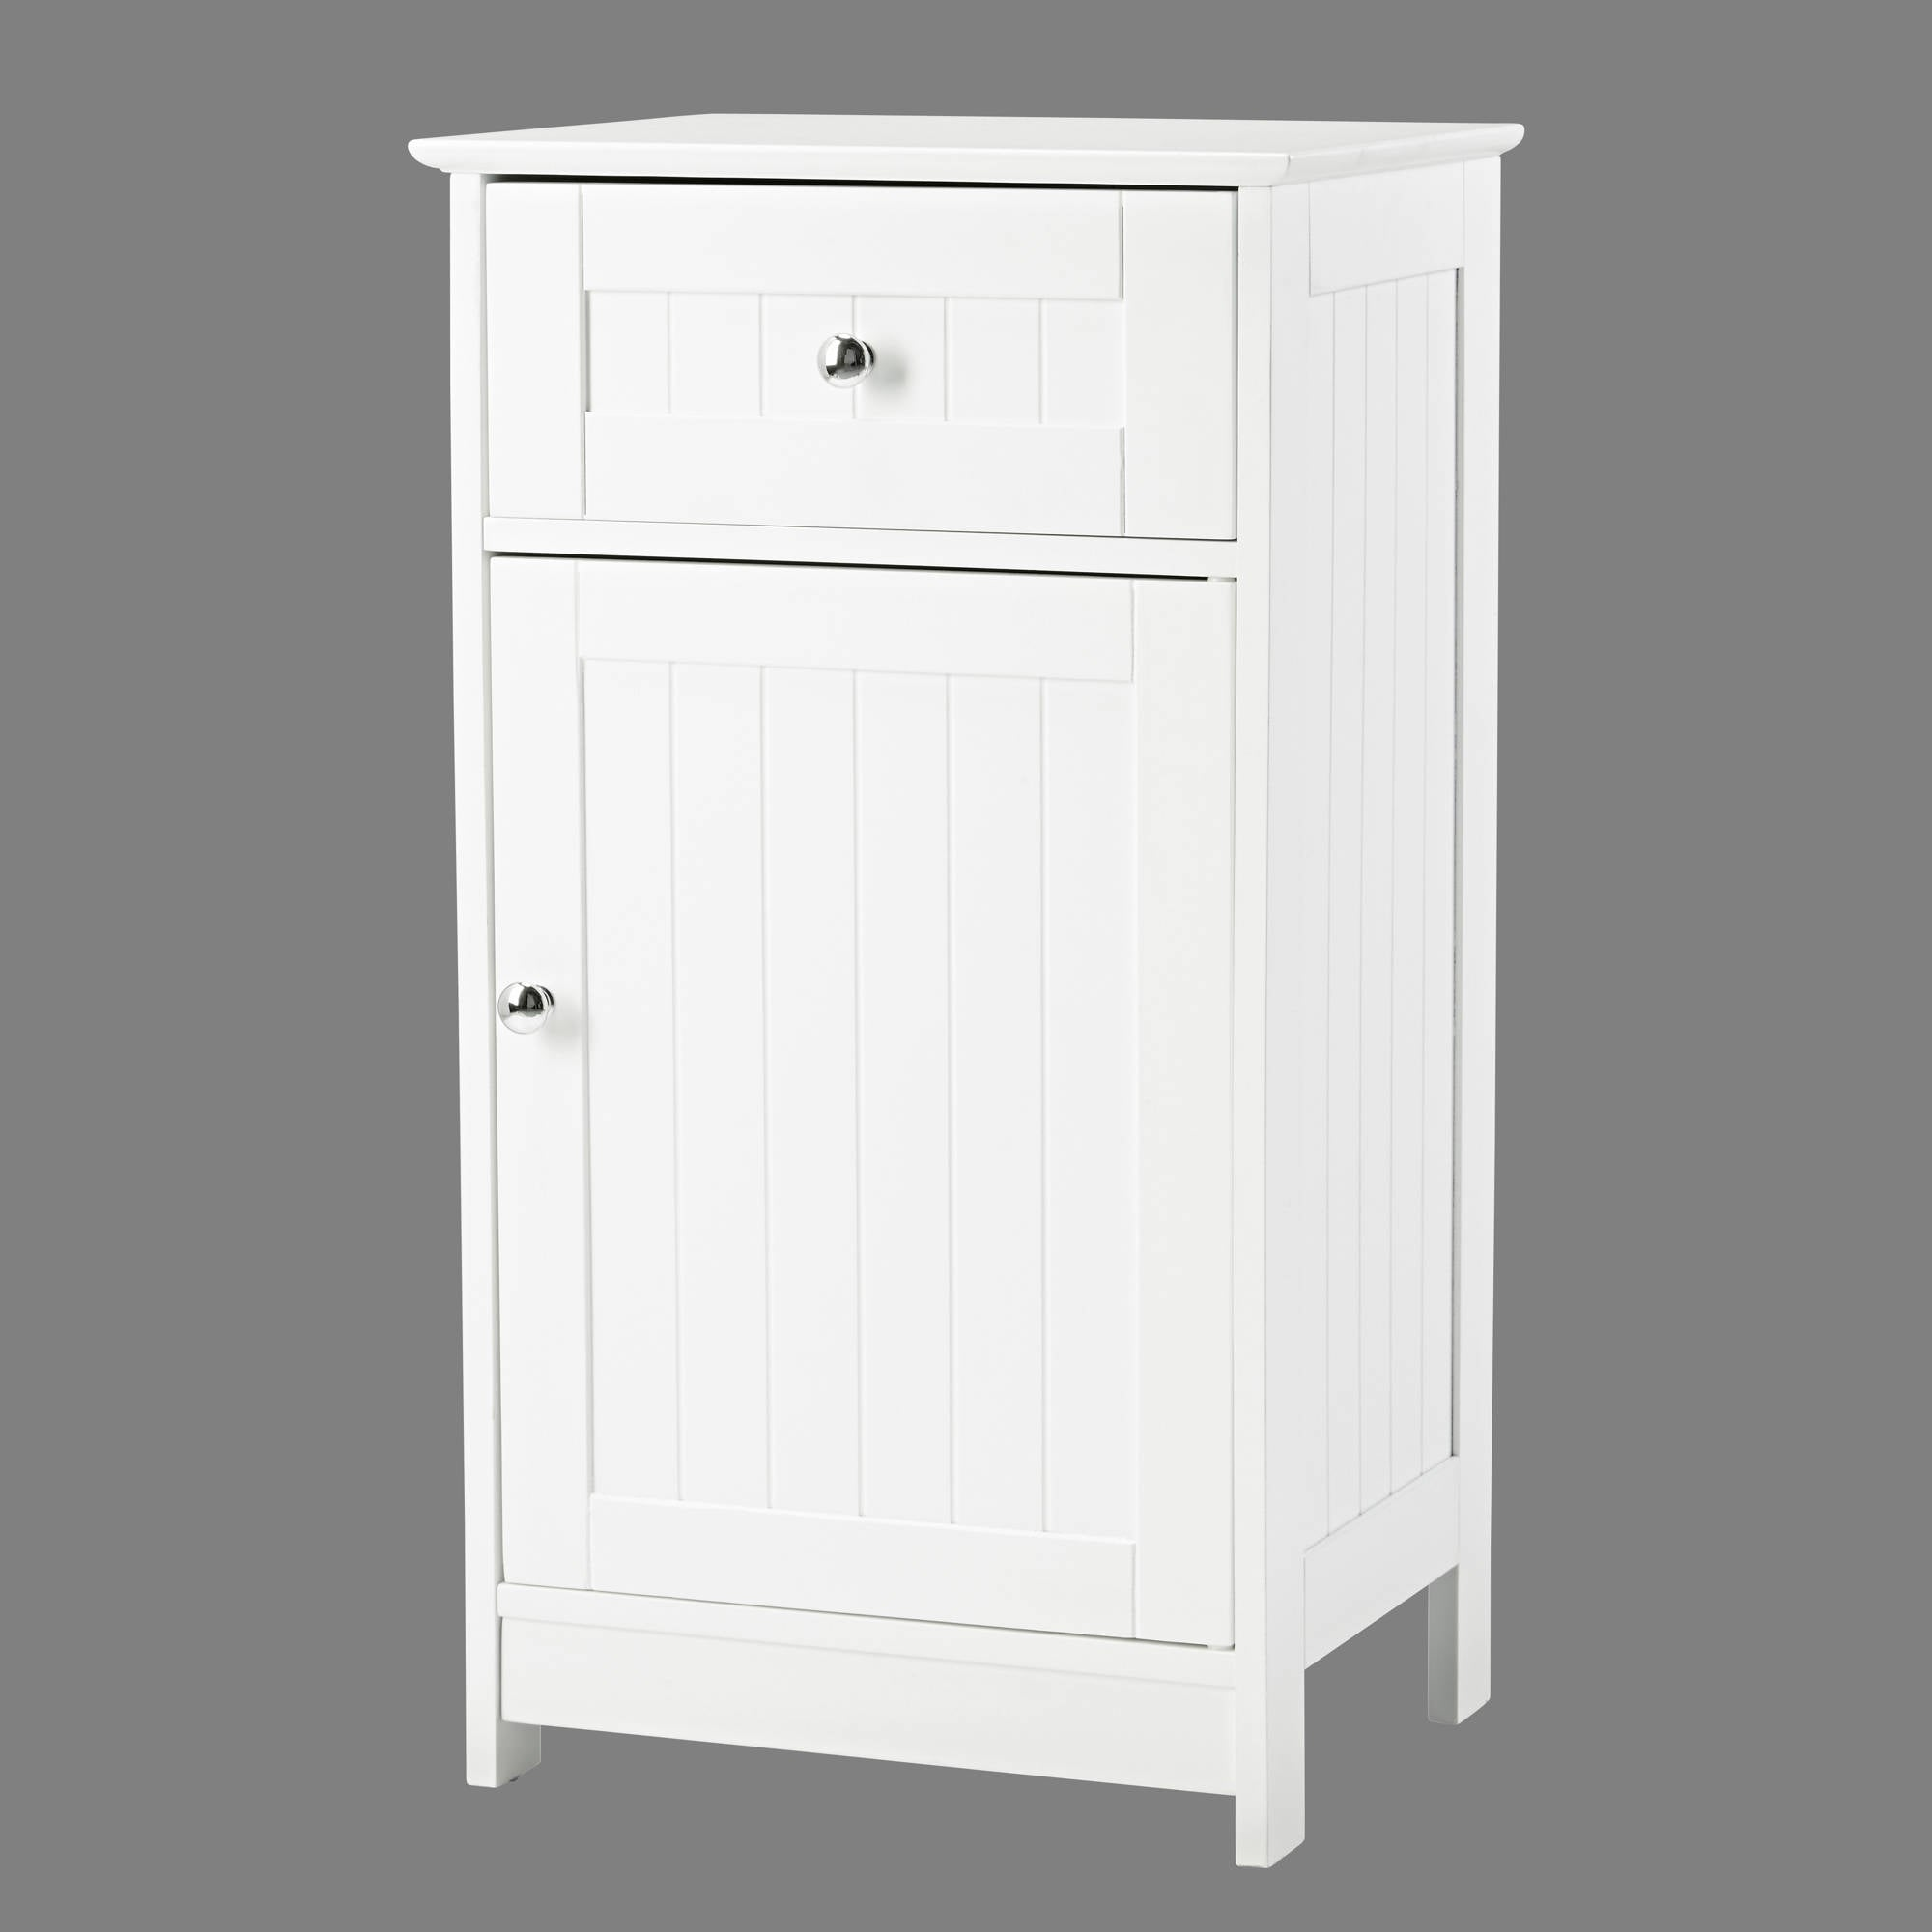 Kodiak White Low Storage Cabinet - Ezzo